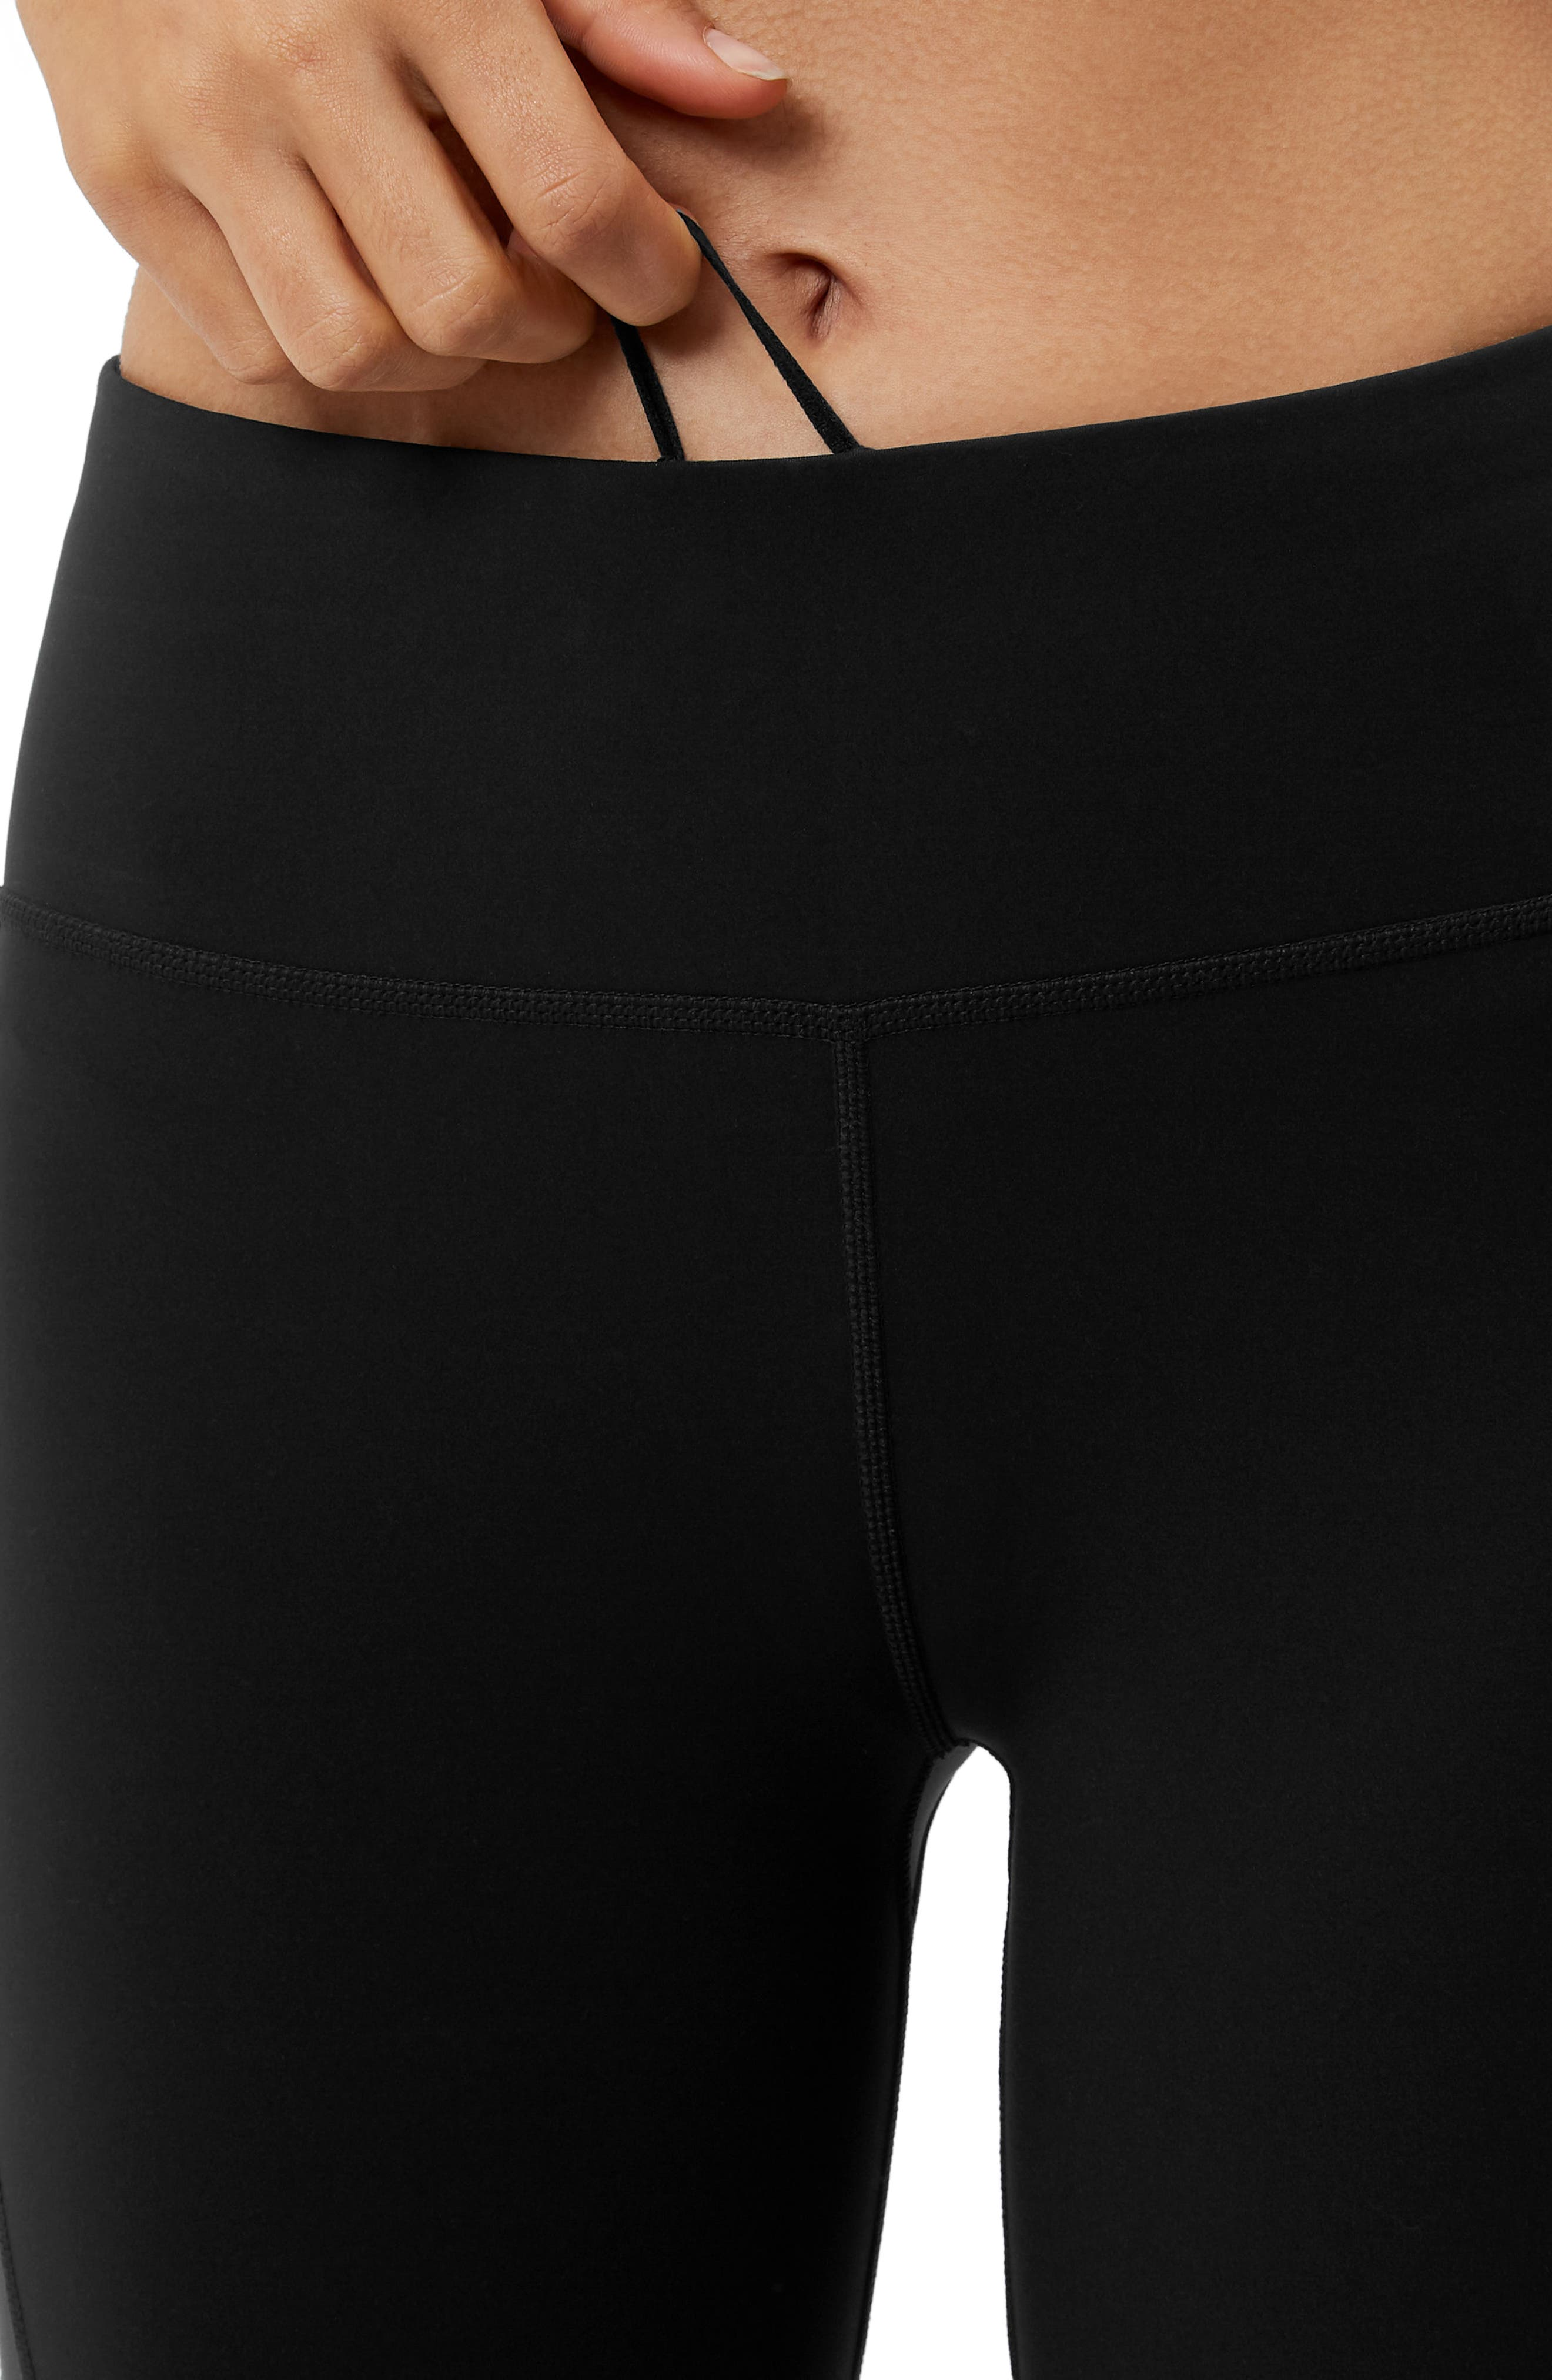 Wetlook Run Leggings,                             Alternate thumbnail 4, color,                             BLACK